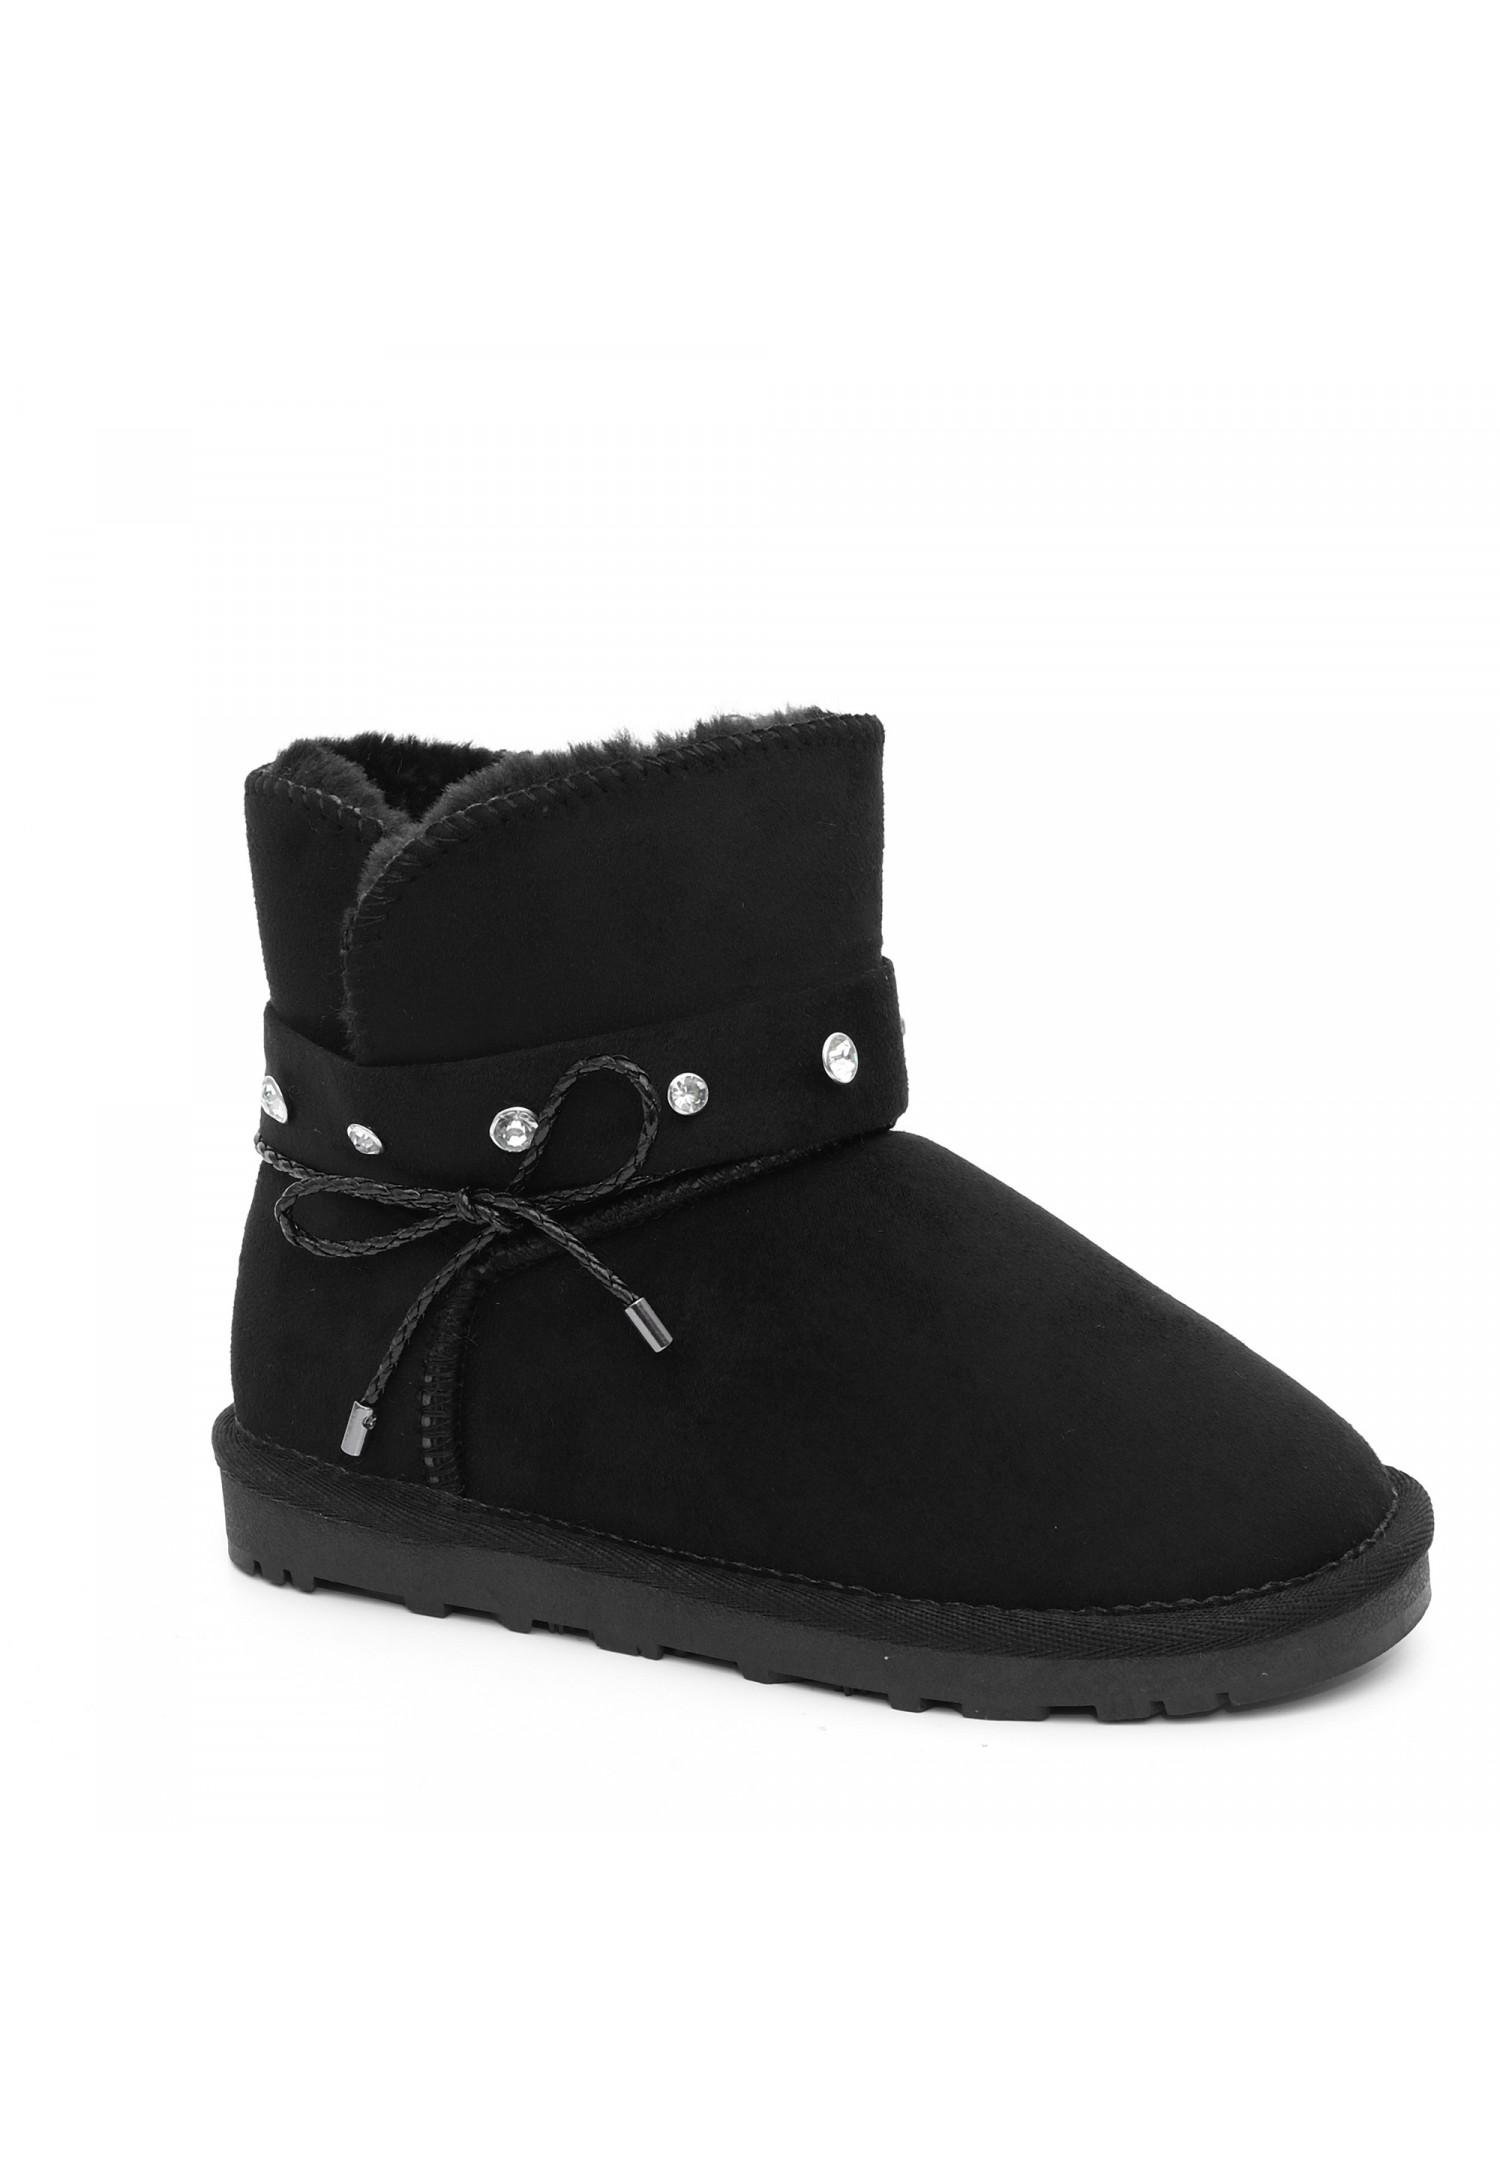 Bottines Enfants Cristinette